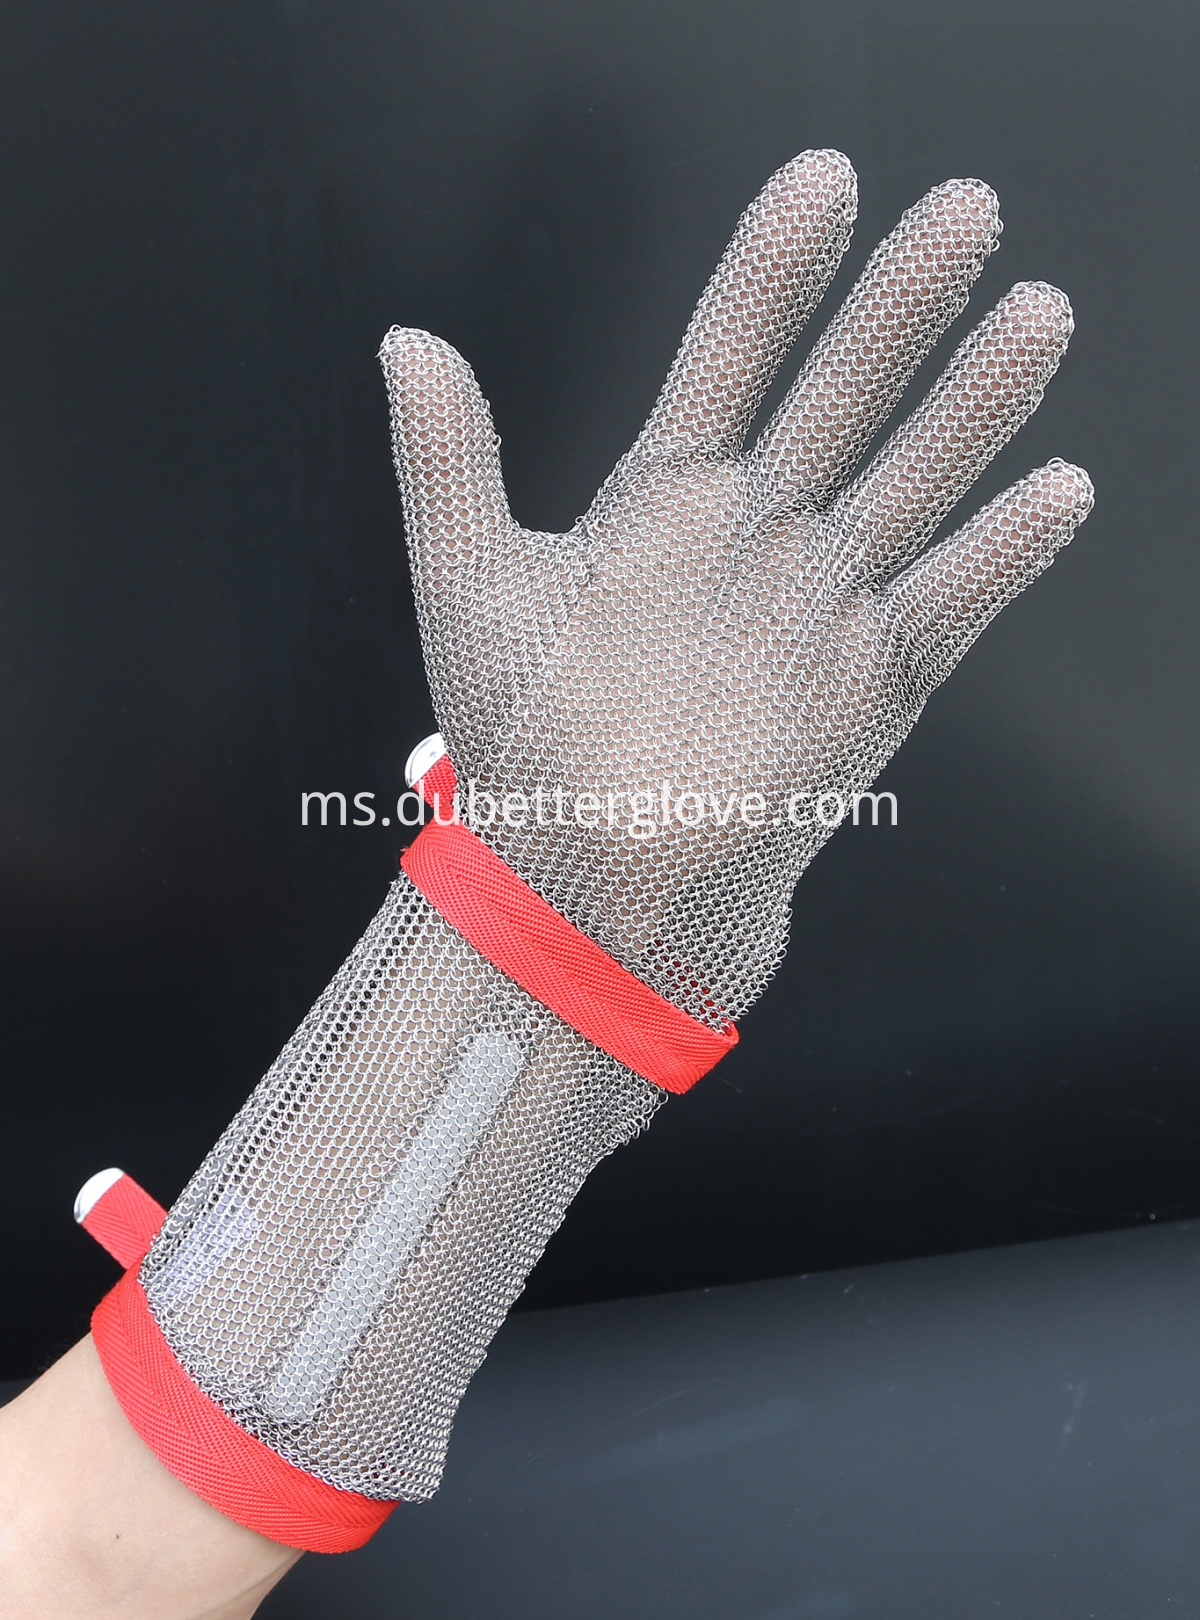 zhonghe chain mail gloves